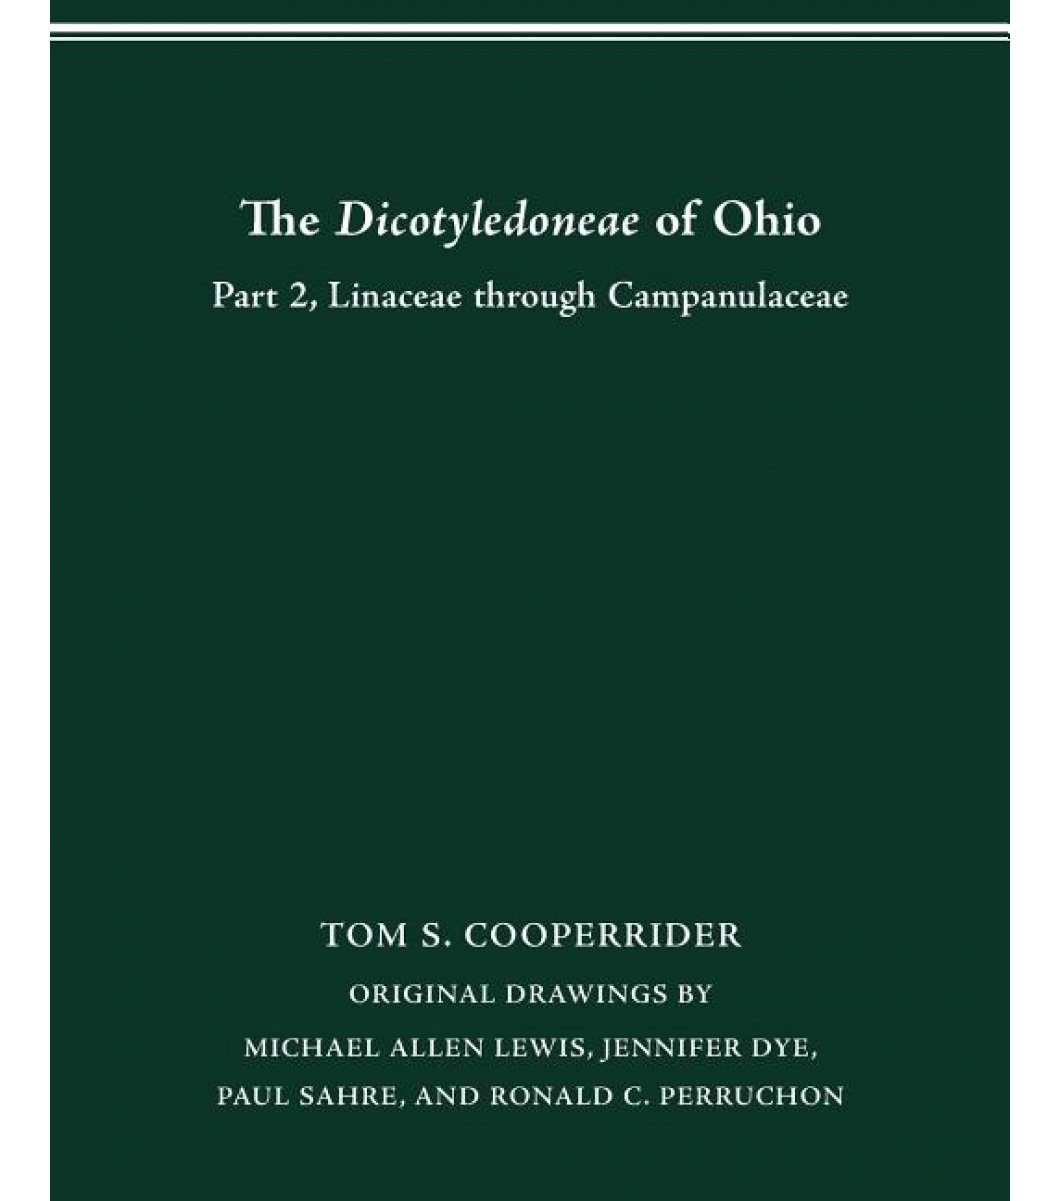 The Dicotyledoneae of Ohio, Part 2